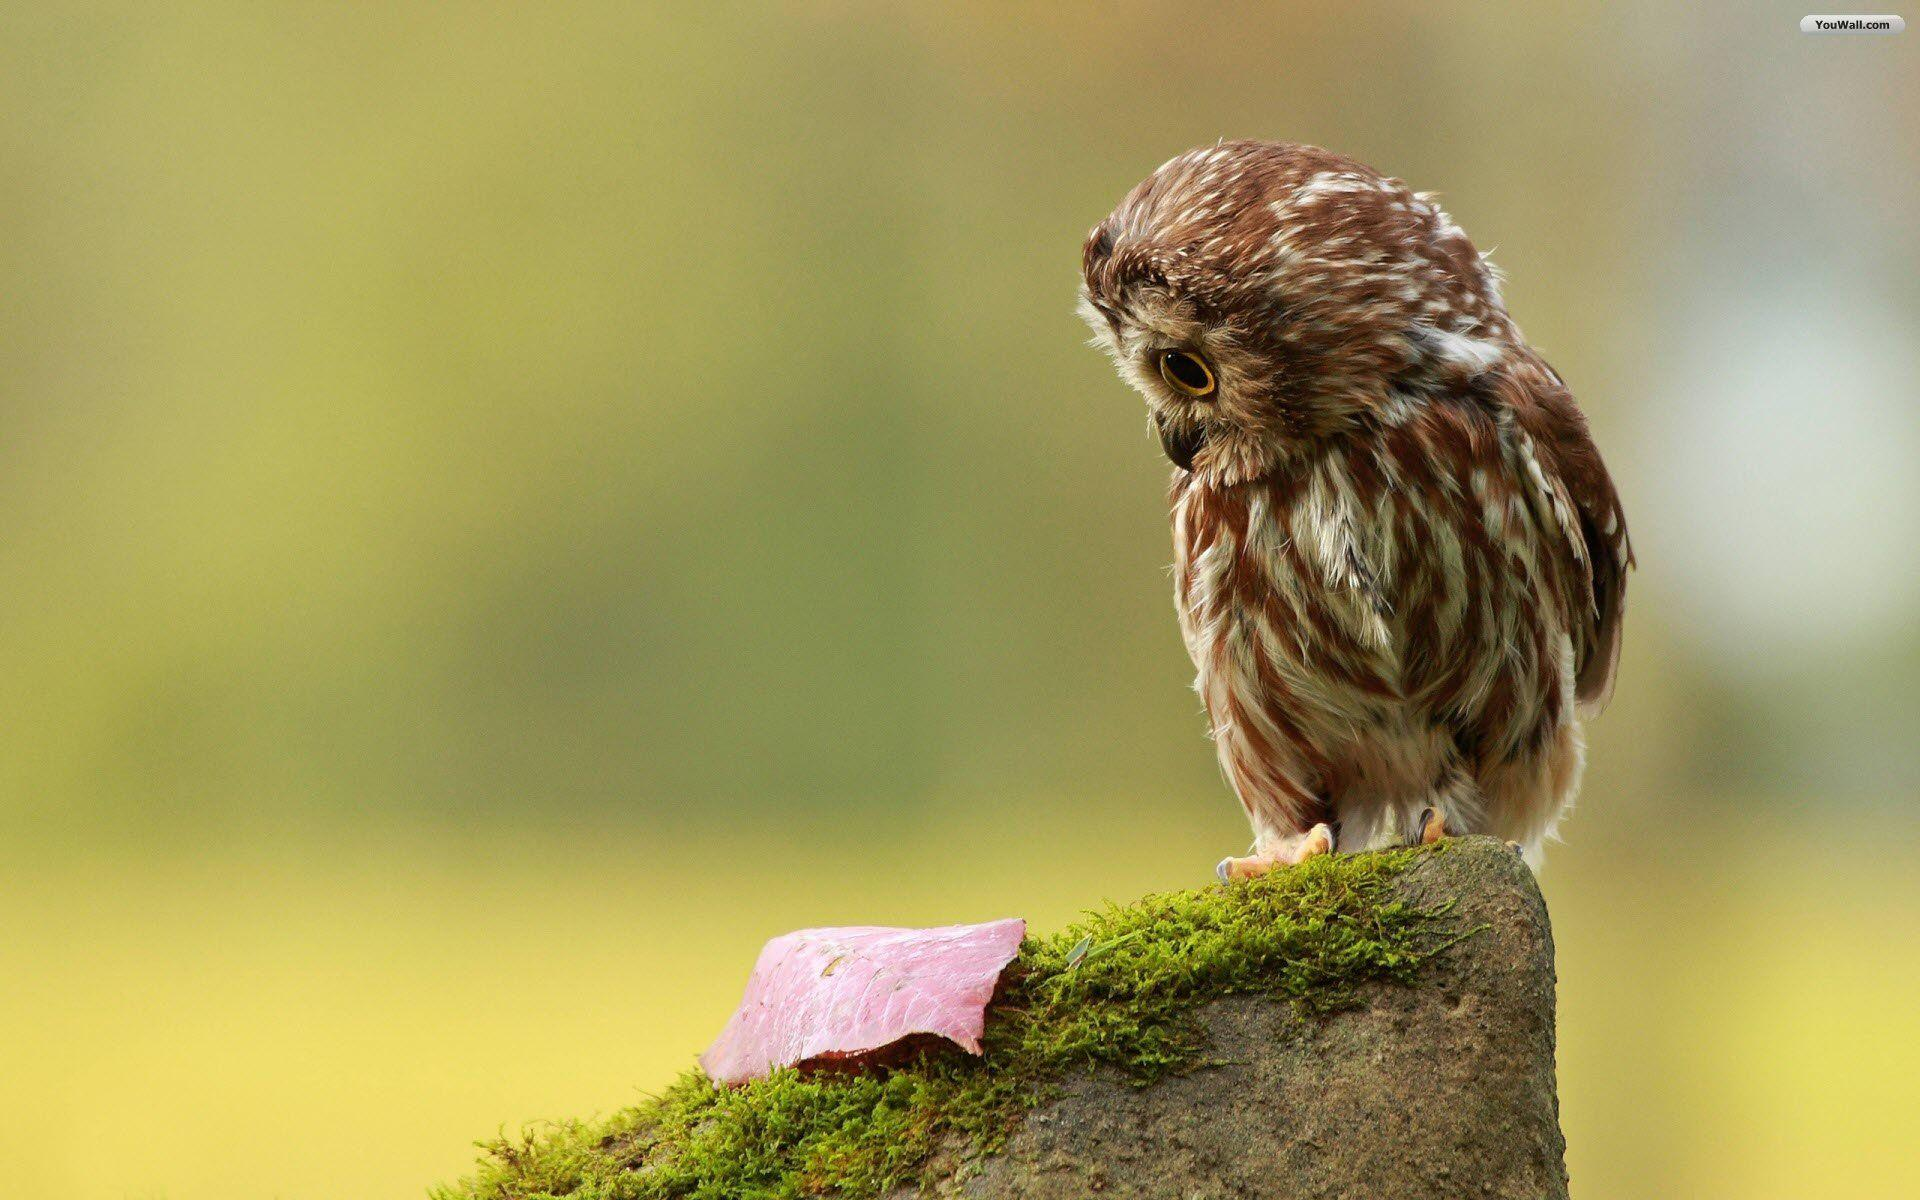 Wallpapers For > Cute Baby Owl Wallpaper